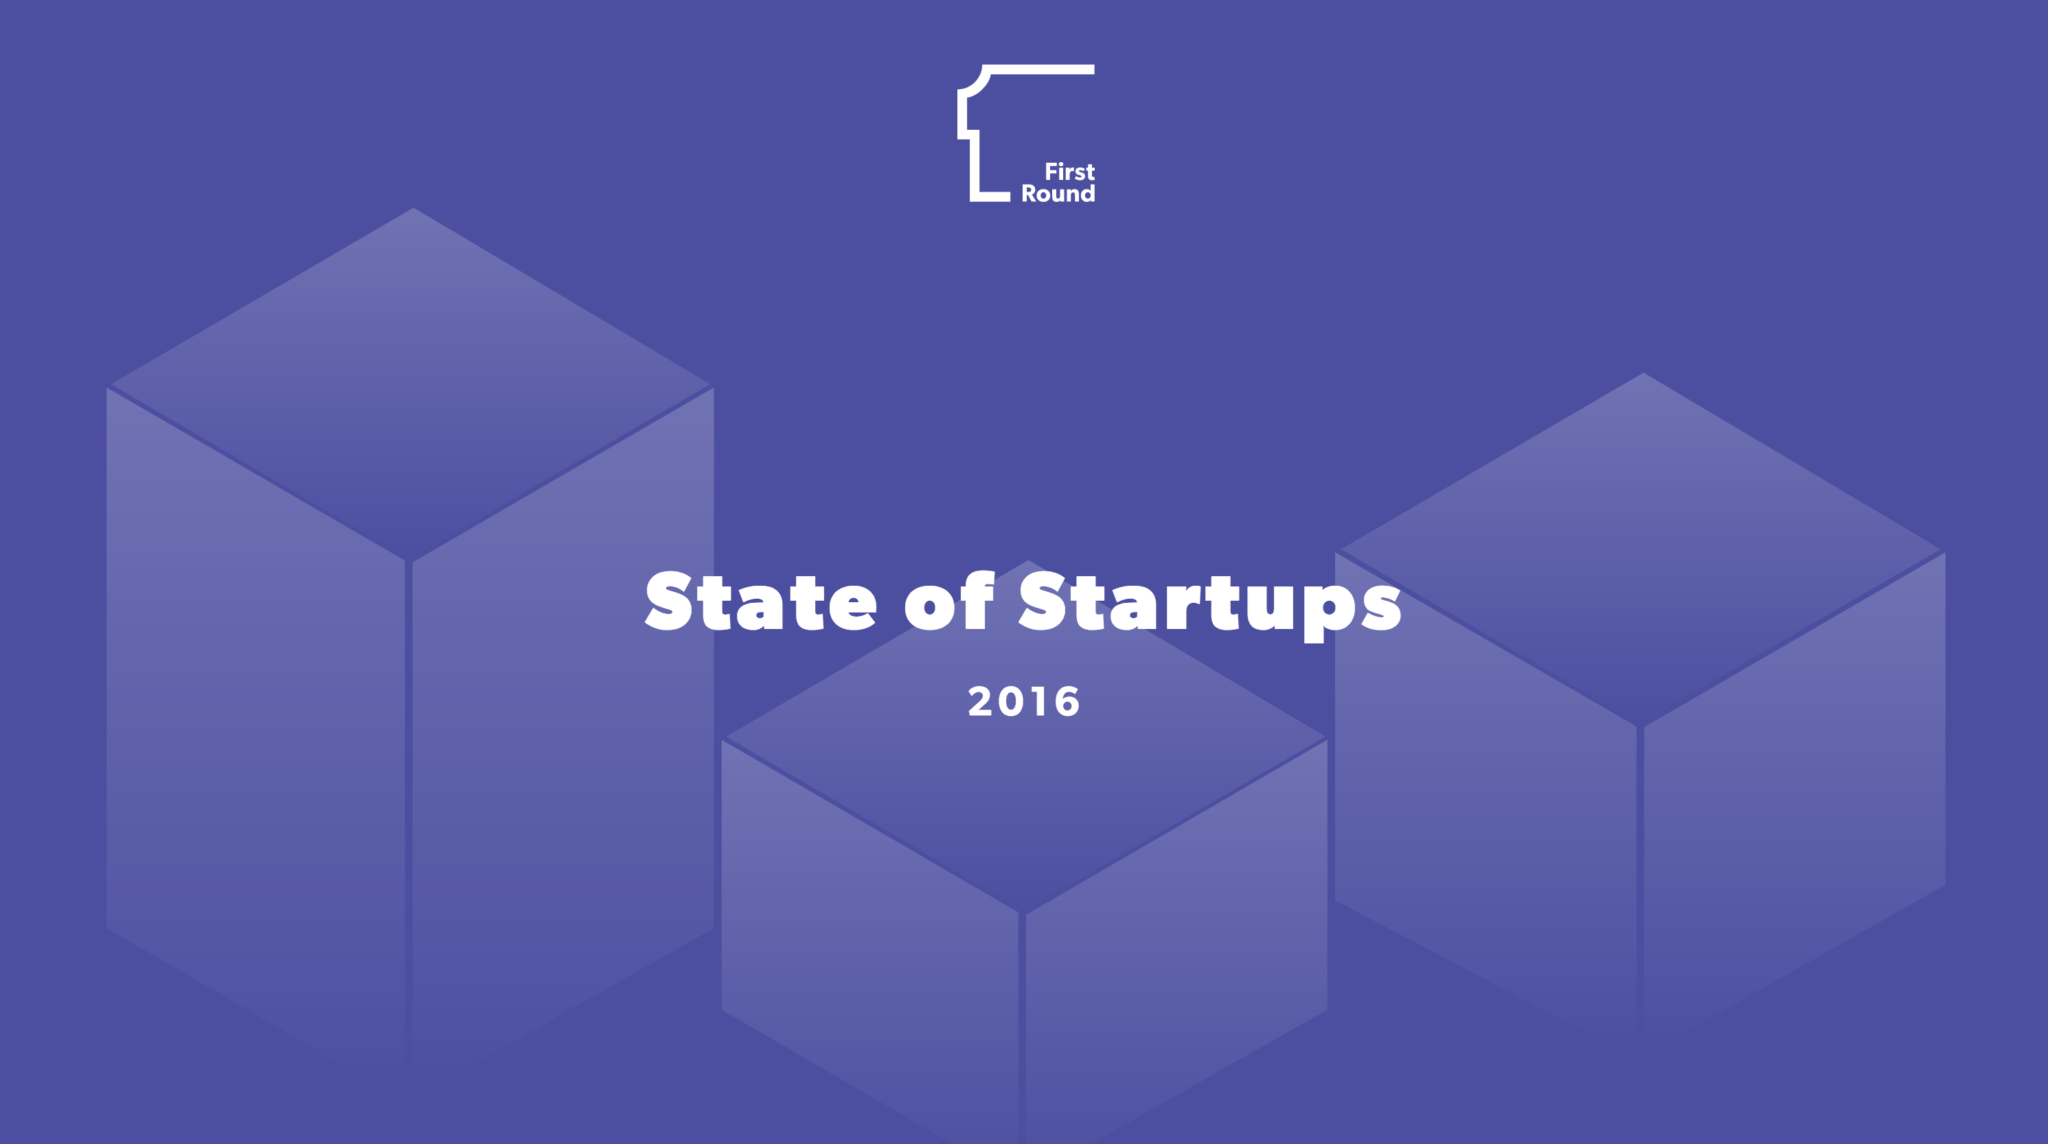 First Round State of Startups